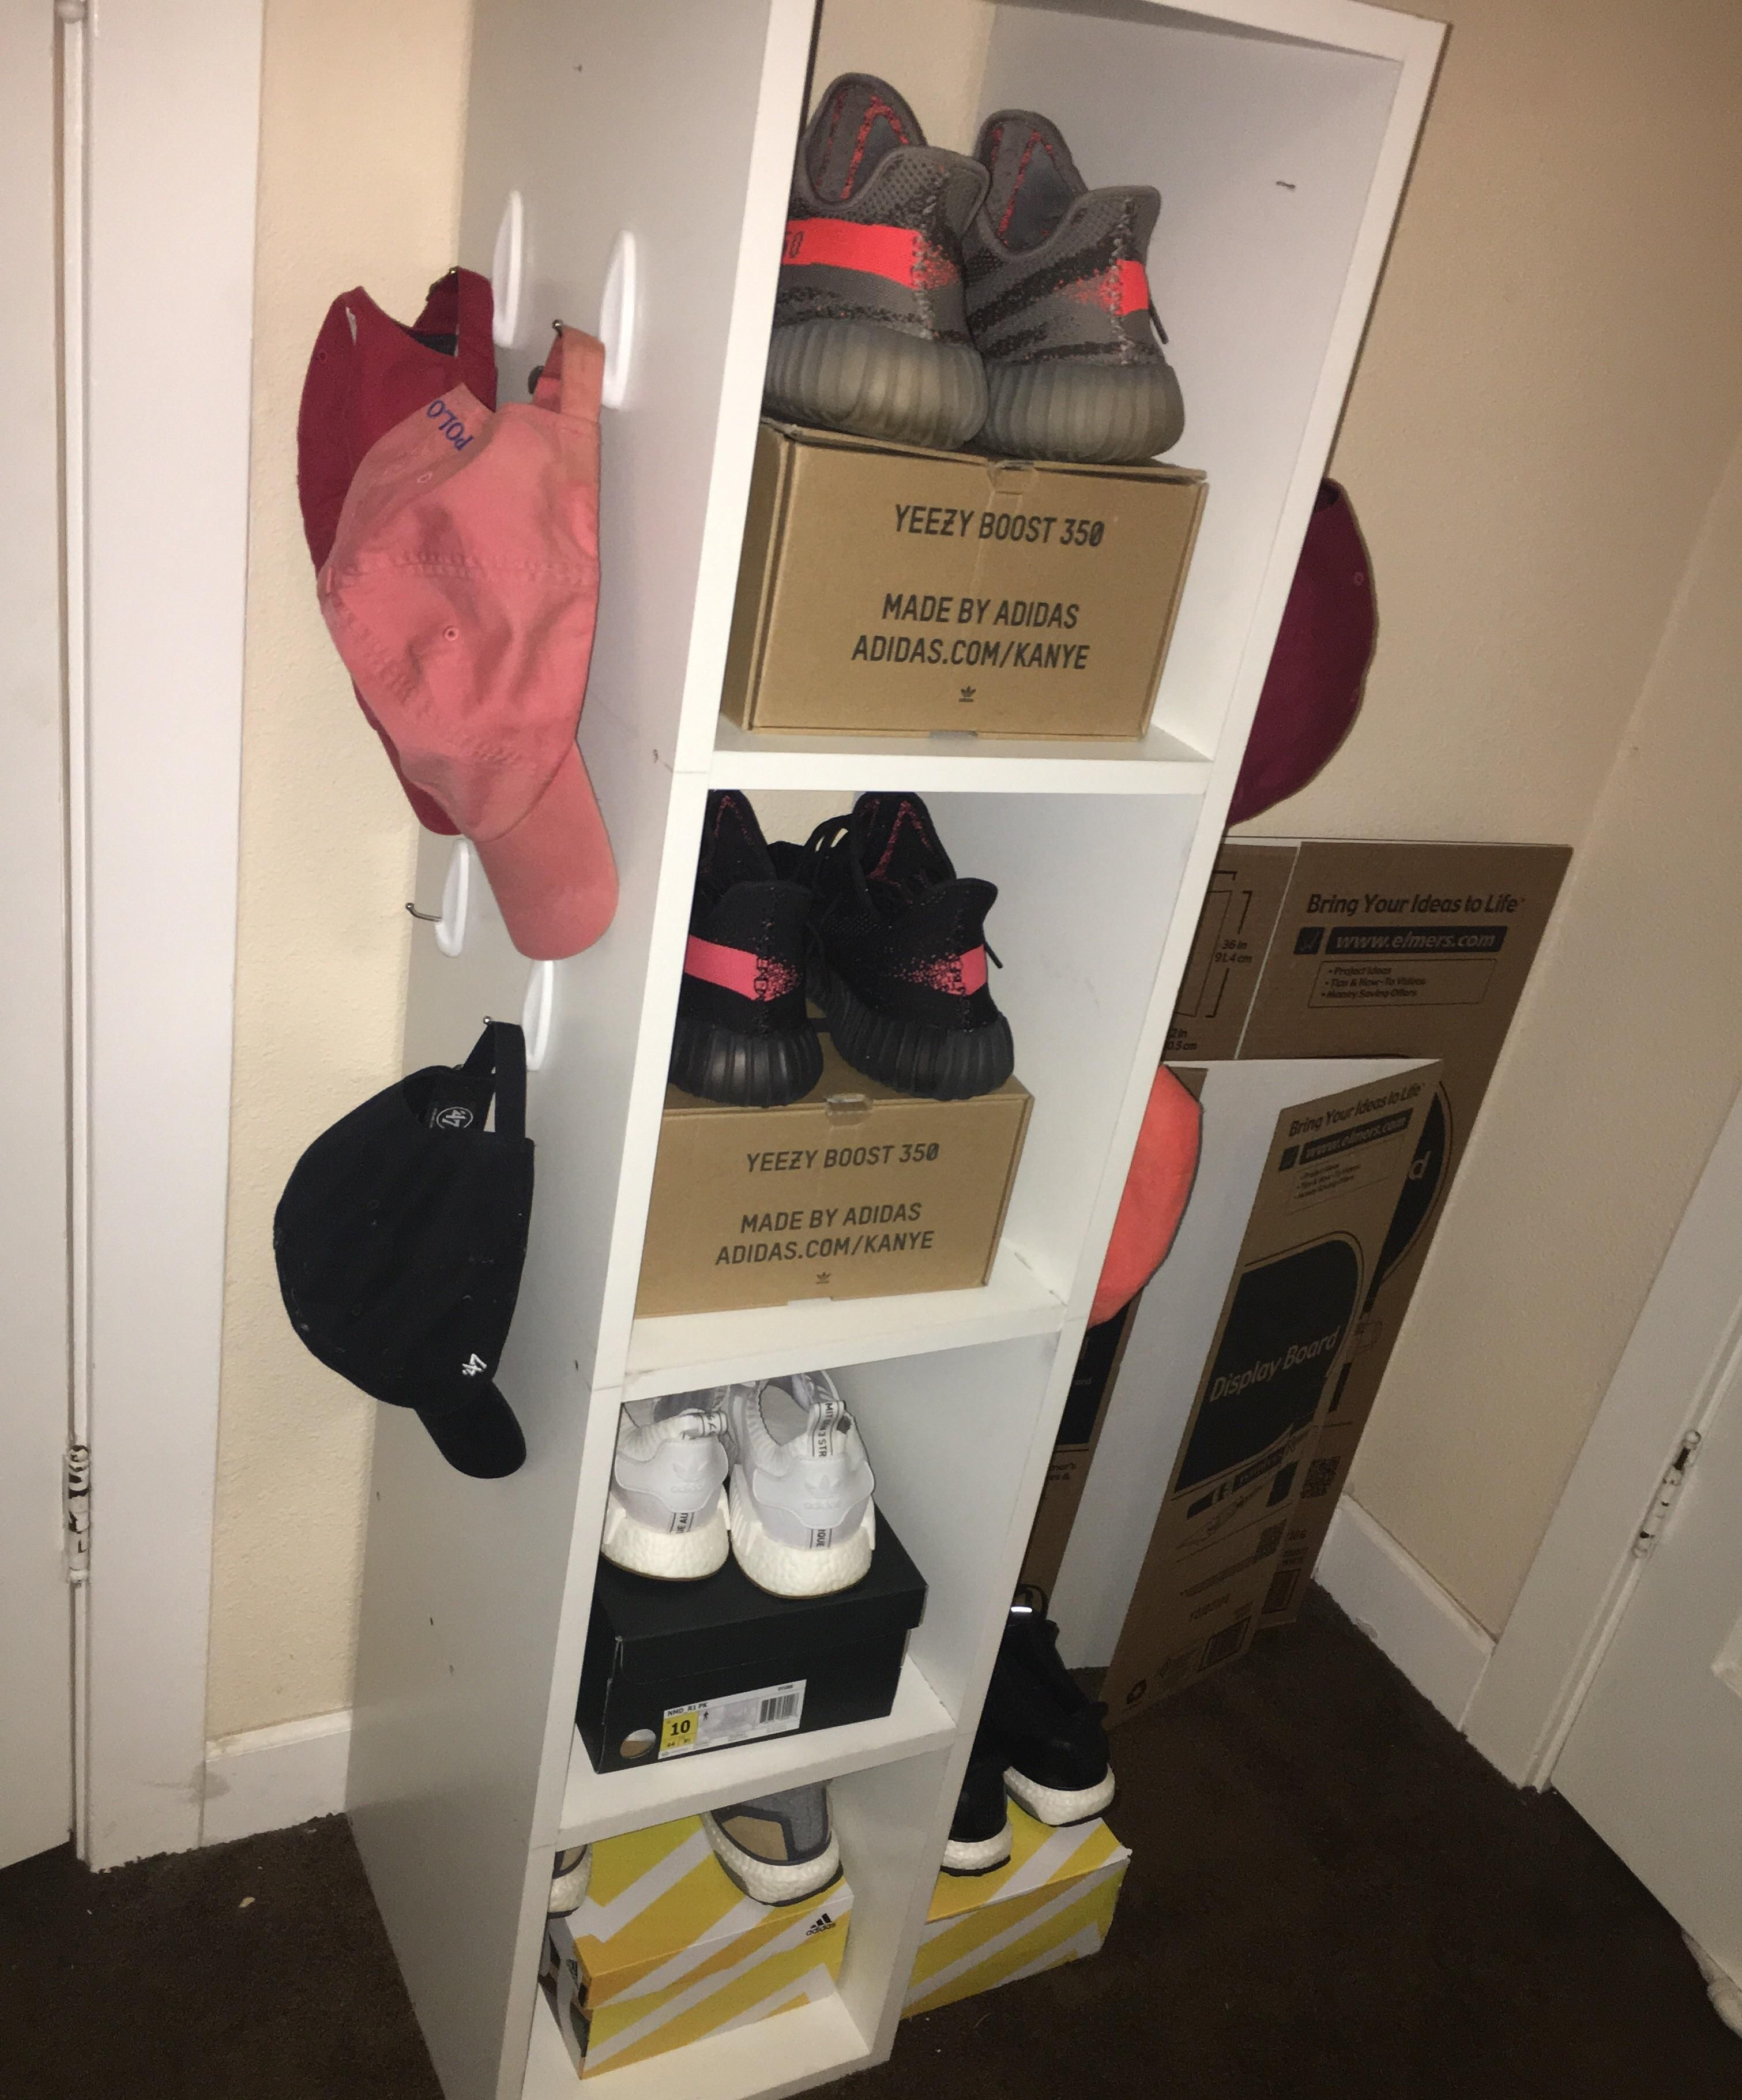 Built a shoe rack today to hold my newest pickup and grails belugas